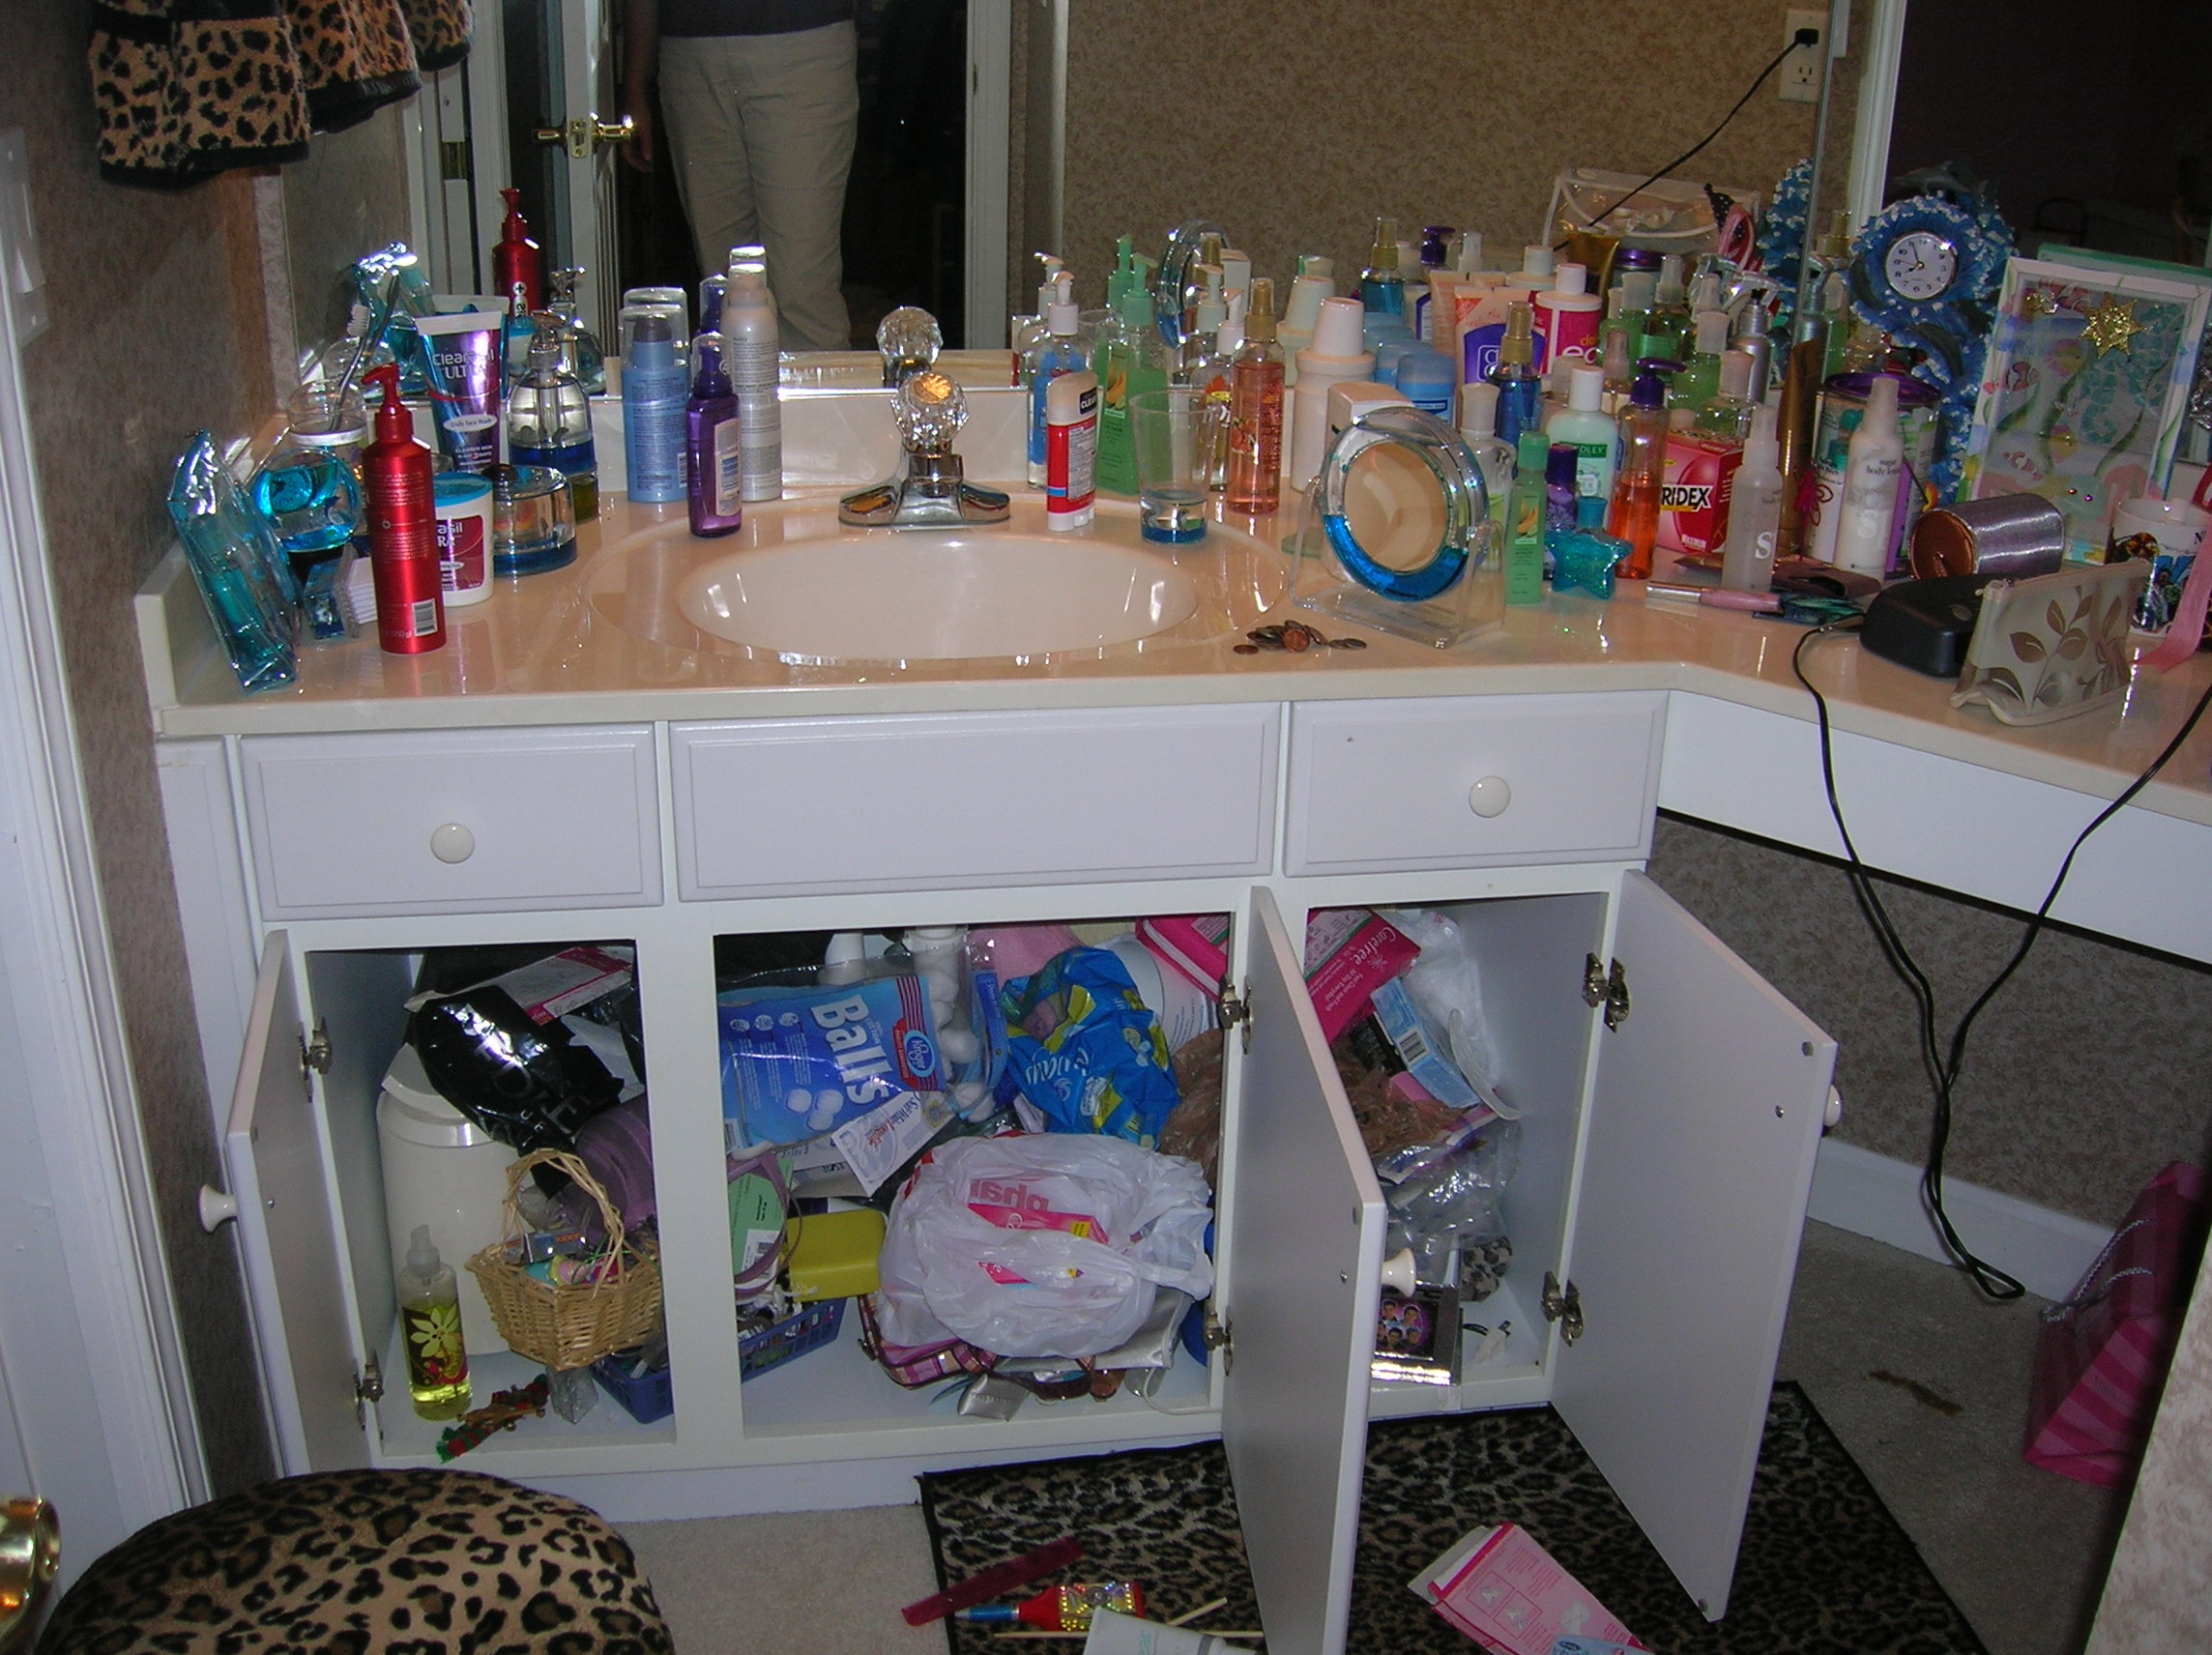 Bathroom cabinet organizers - Before Bathroom Cabinet Organize